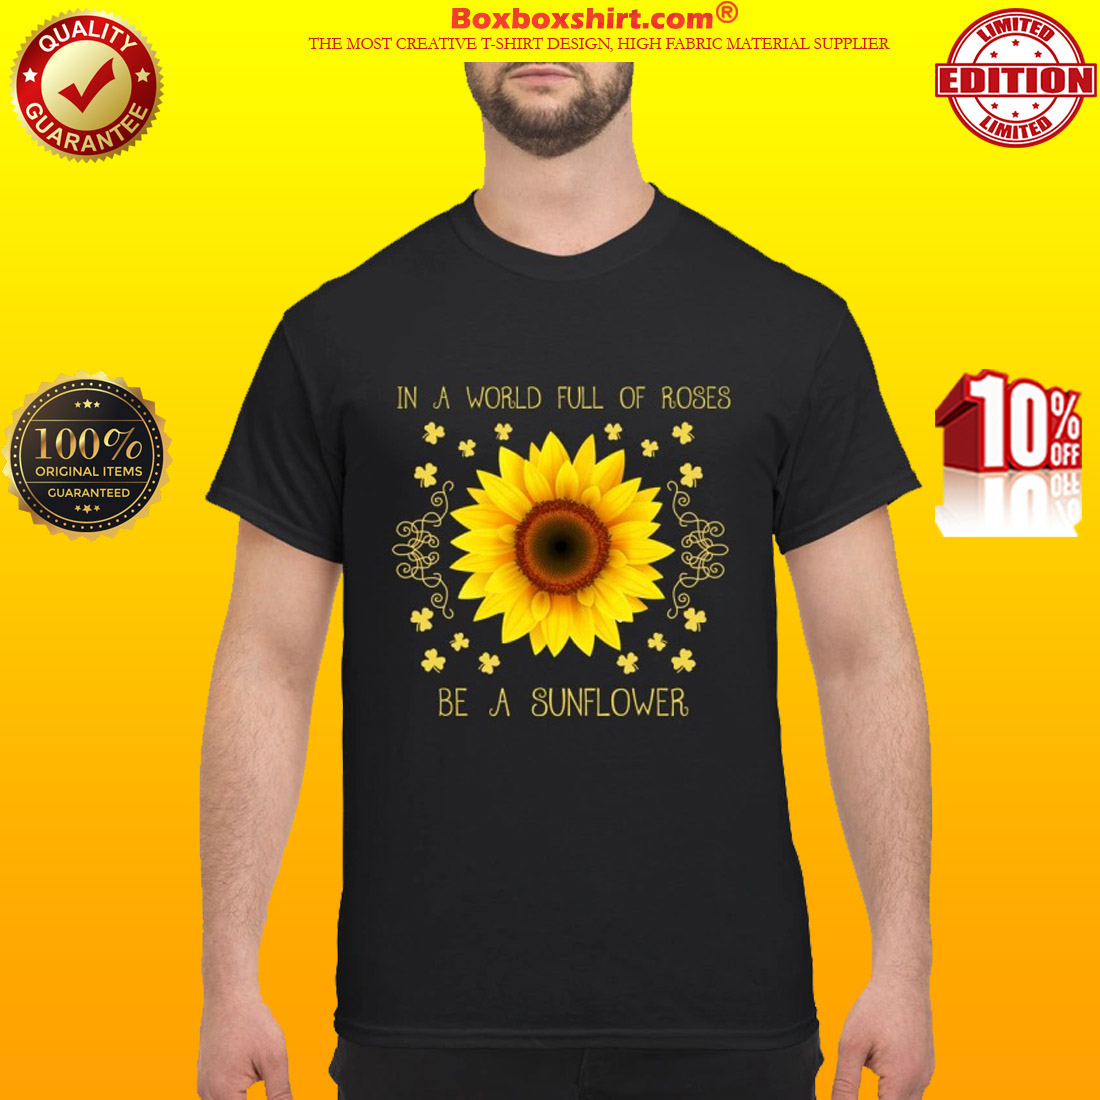 In a world full of roses be a sunflower classic shirt